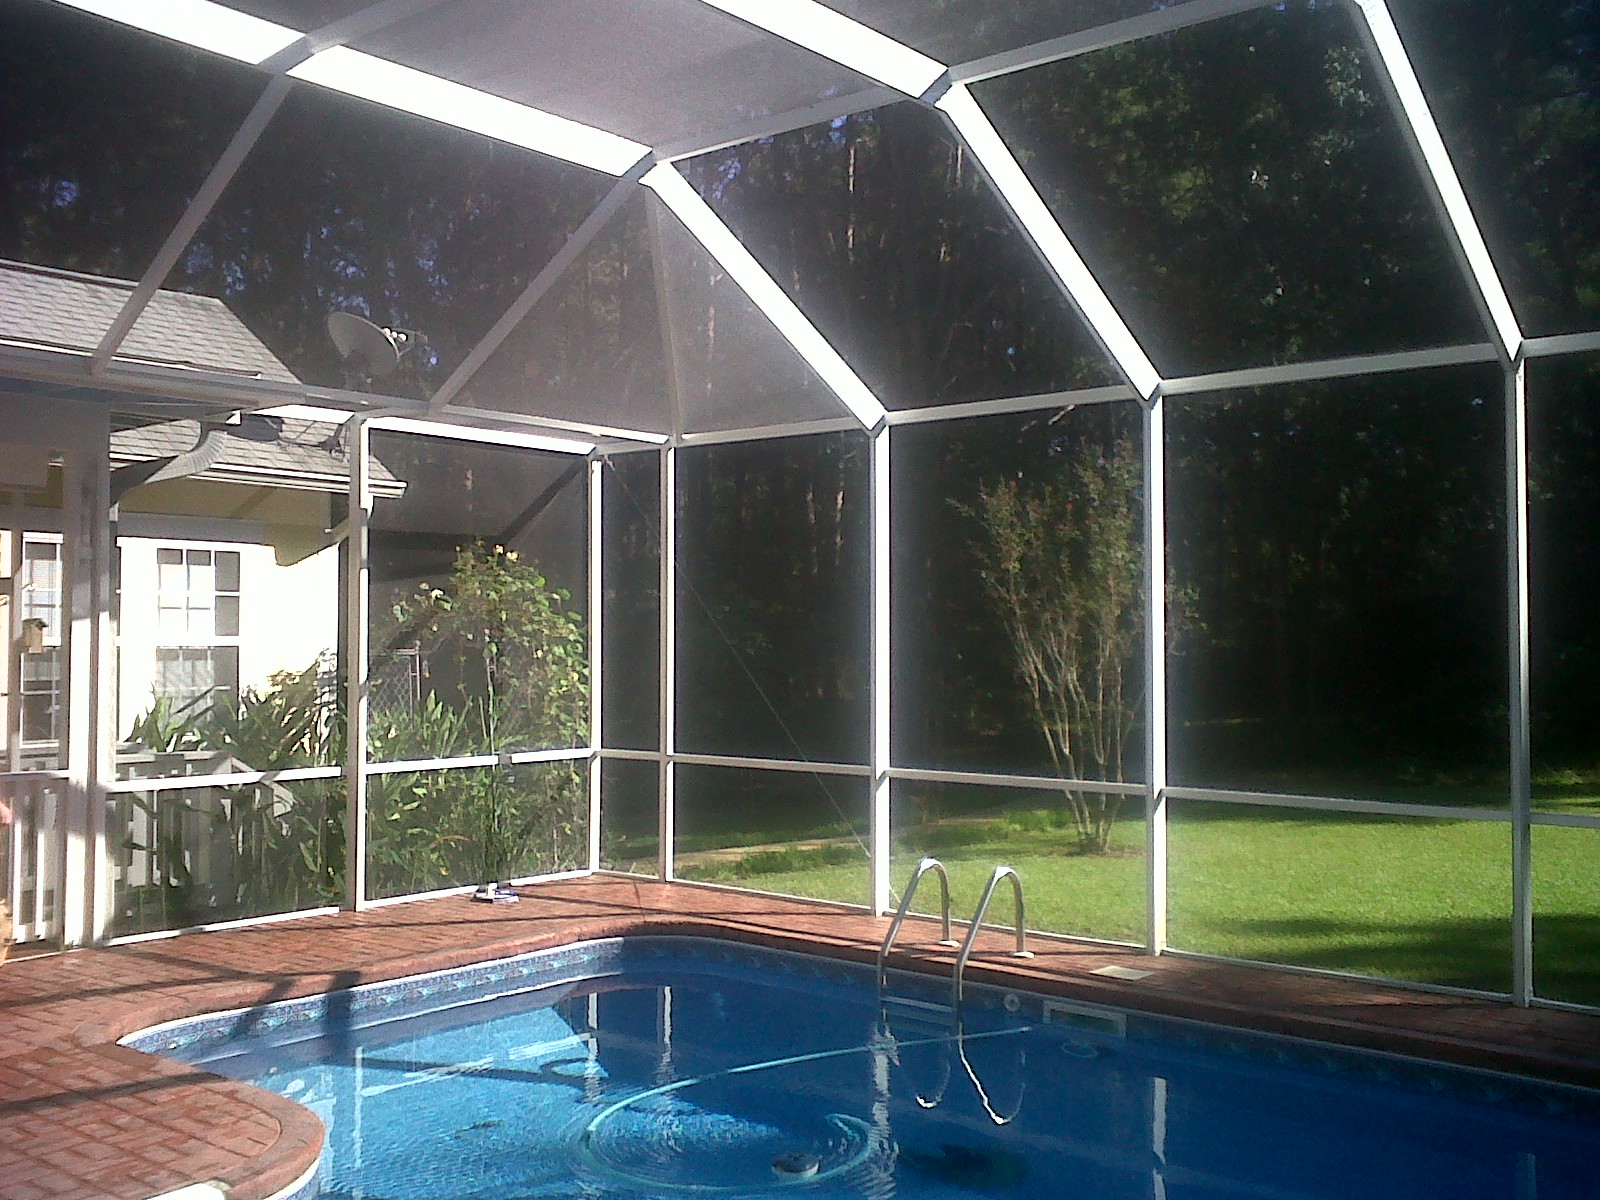 Pool enclosures usa tallahassee pool enclosure specialists for Tallahassee pool builders